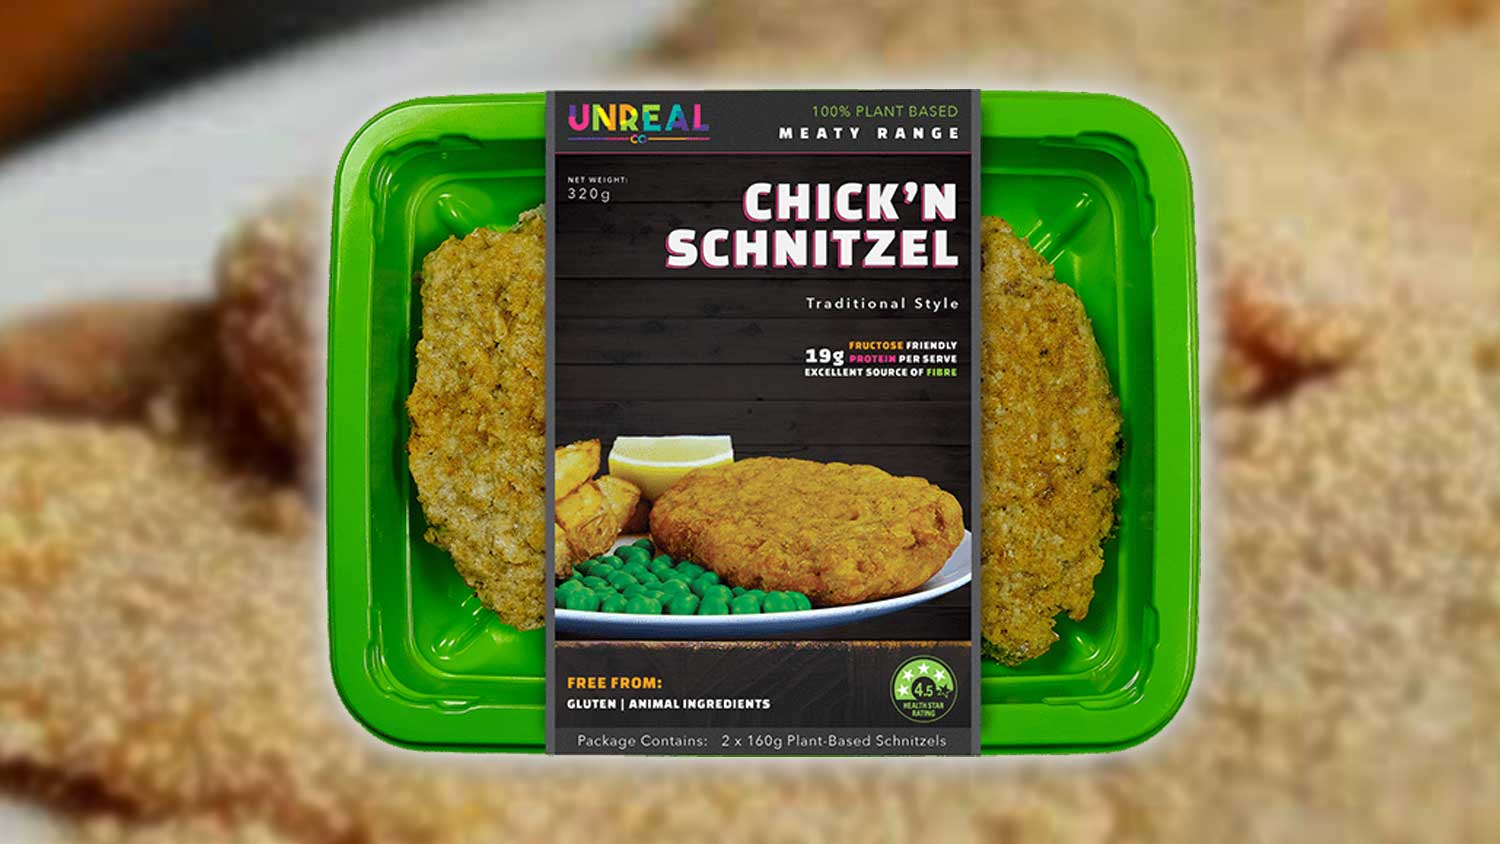 Woolworths Launches 'Unreal' Range of Vegan Chicken Products